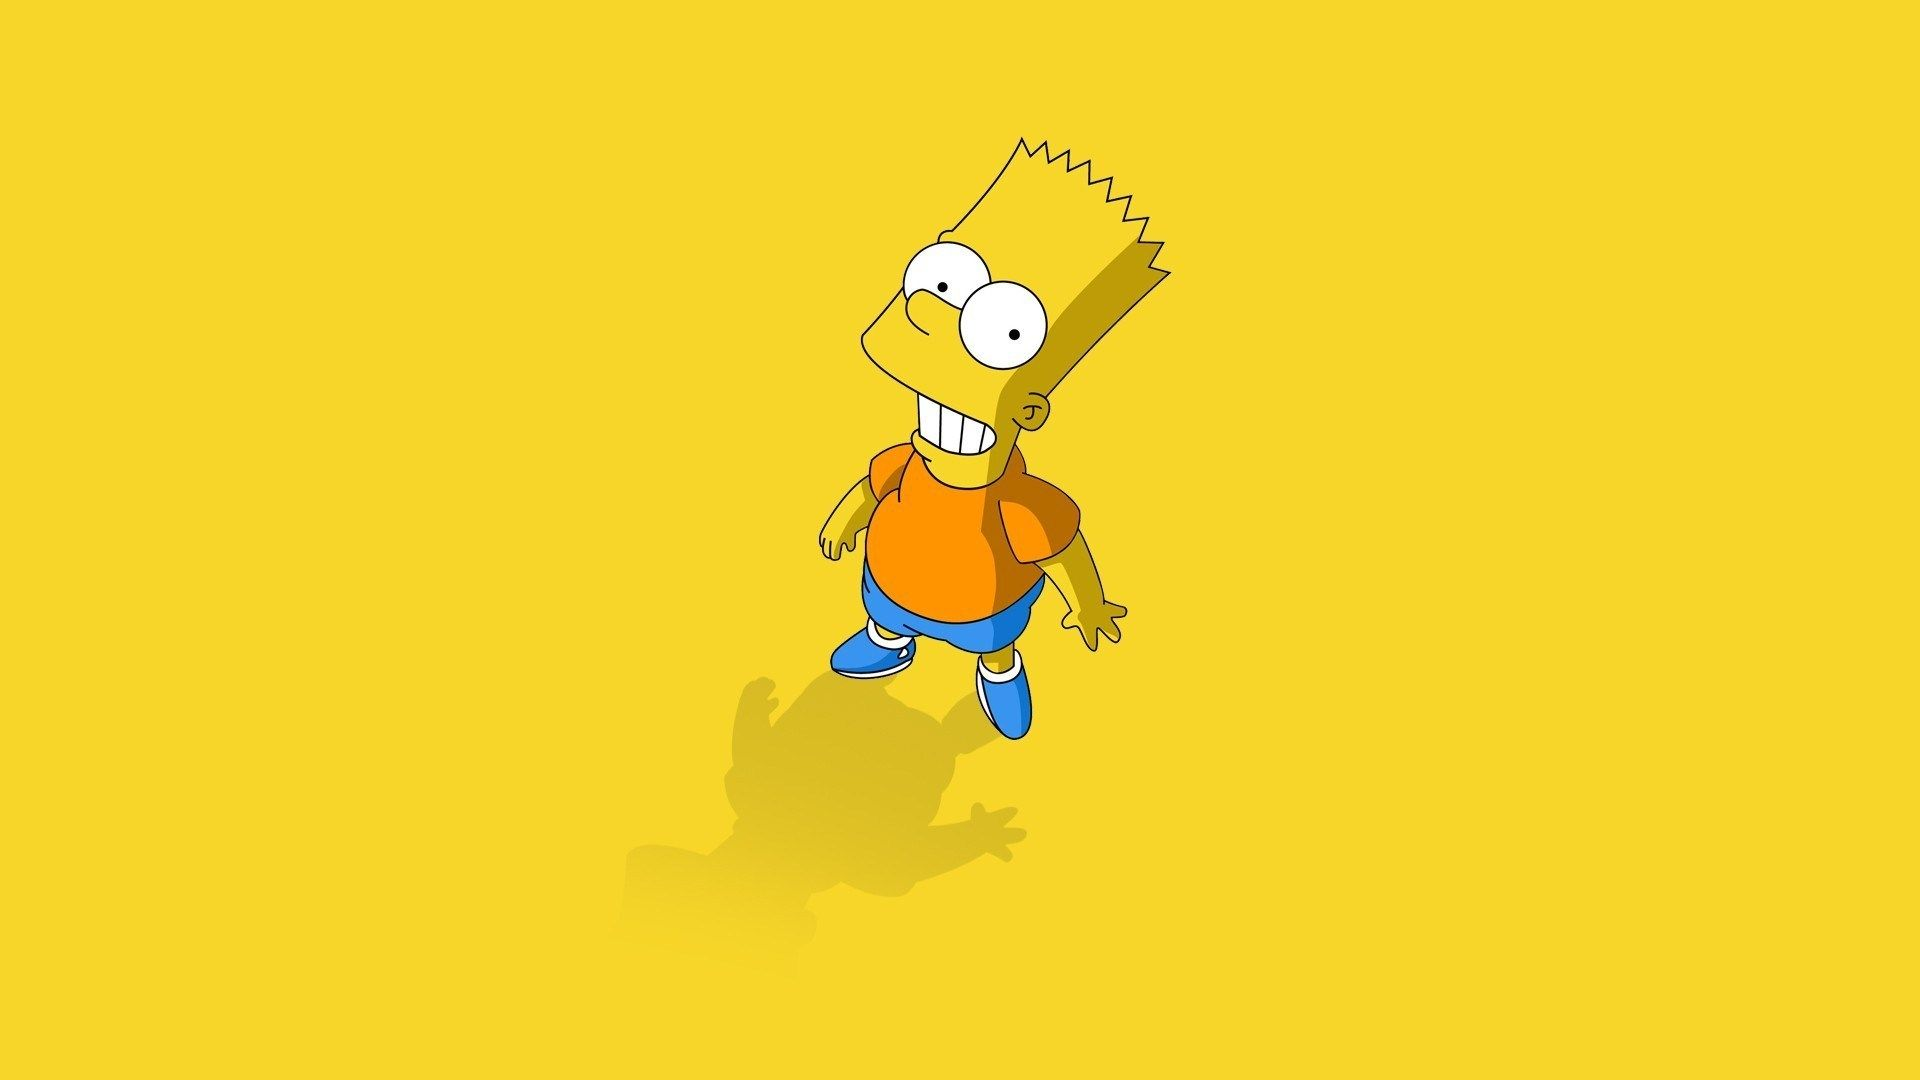 The Simpsons Wallpapers Hd Wallpaper In 2019 Bart Simpson